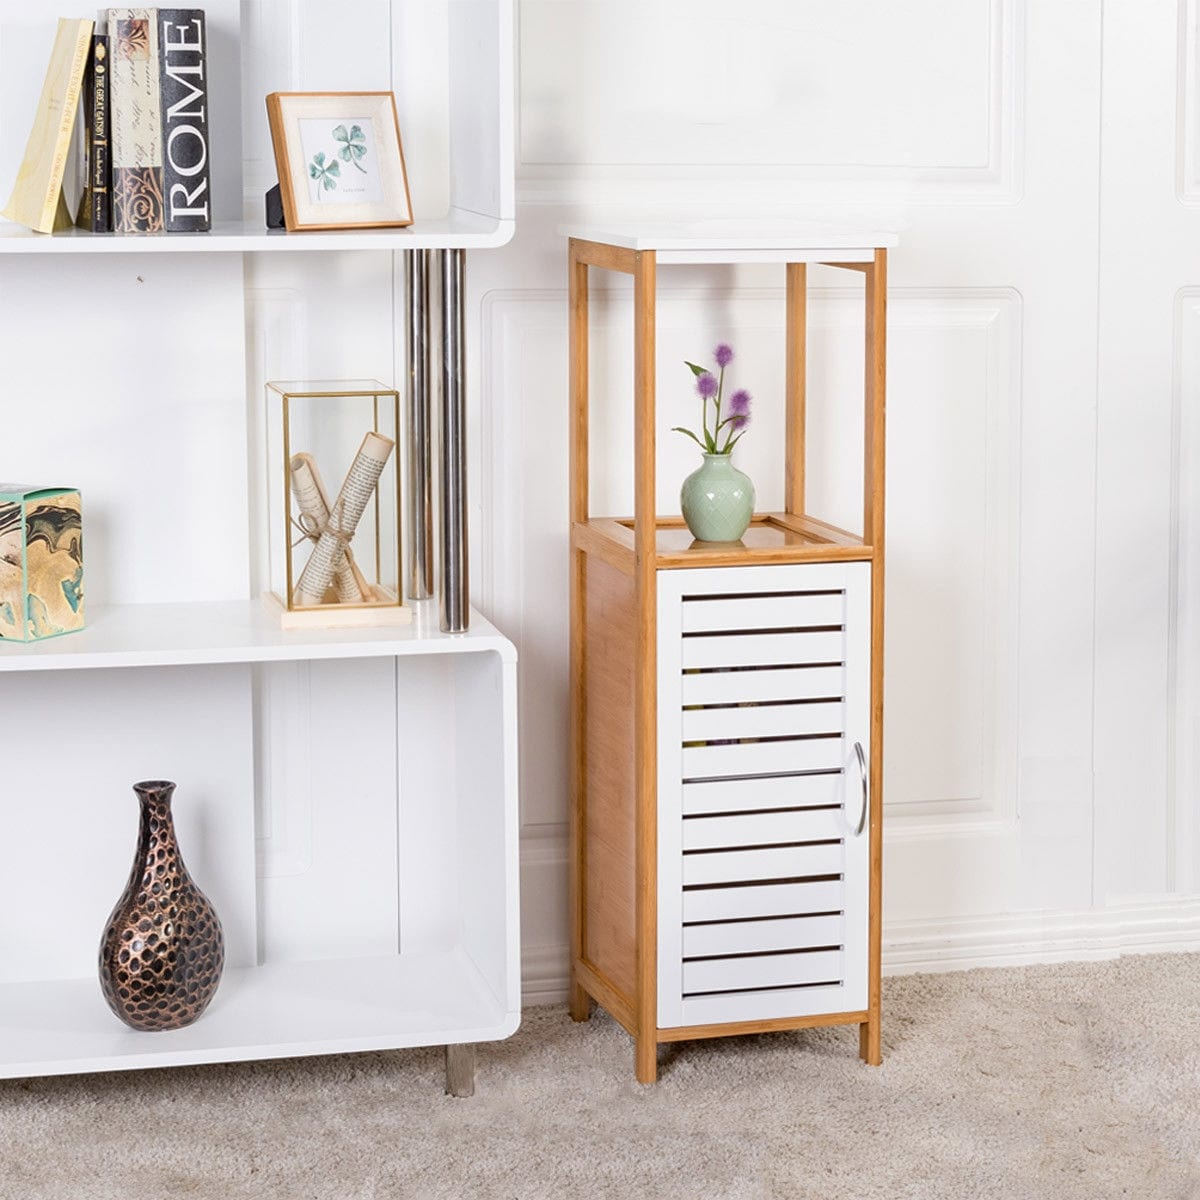 Costway Bamboo Bathroom Storage Rack Floor Cabinet Free Standing Shelf Towel Organizer Natural White Shipping Today 21009971